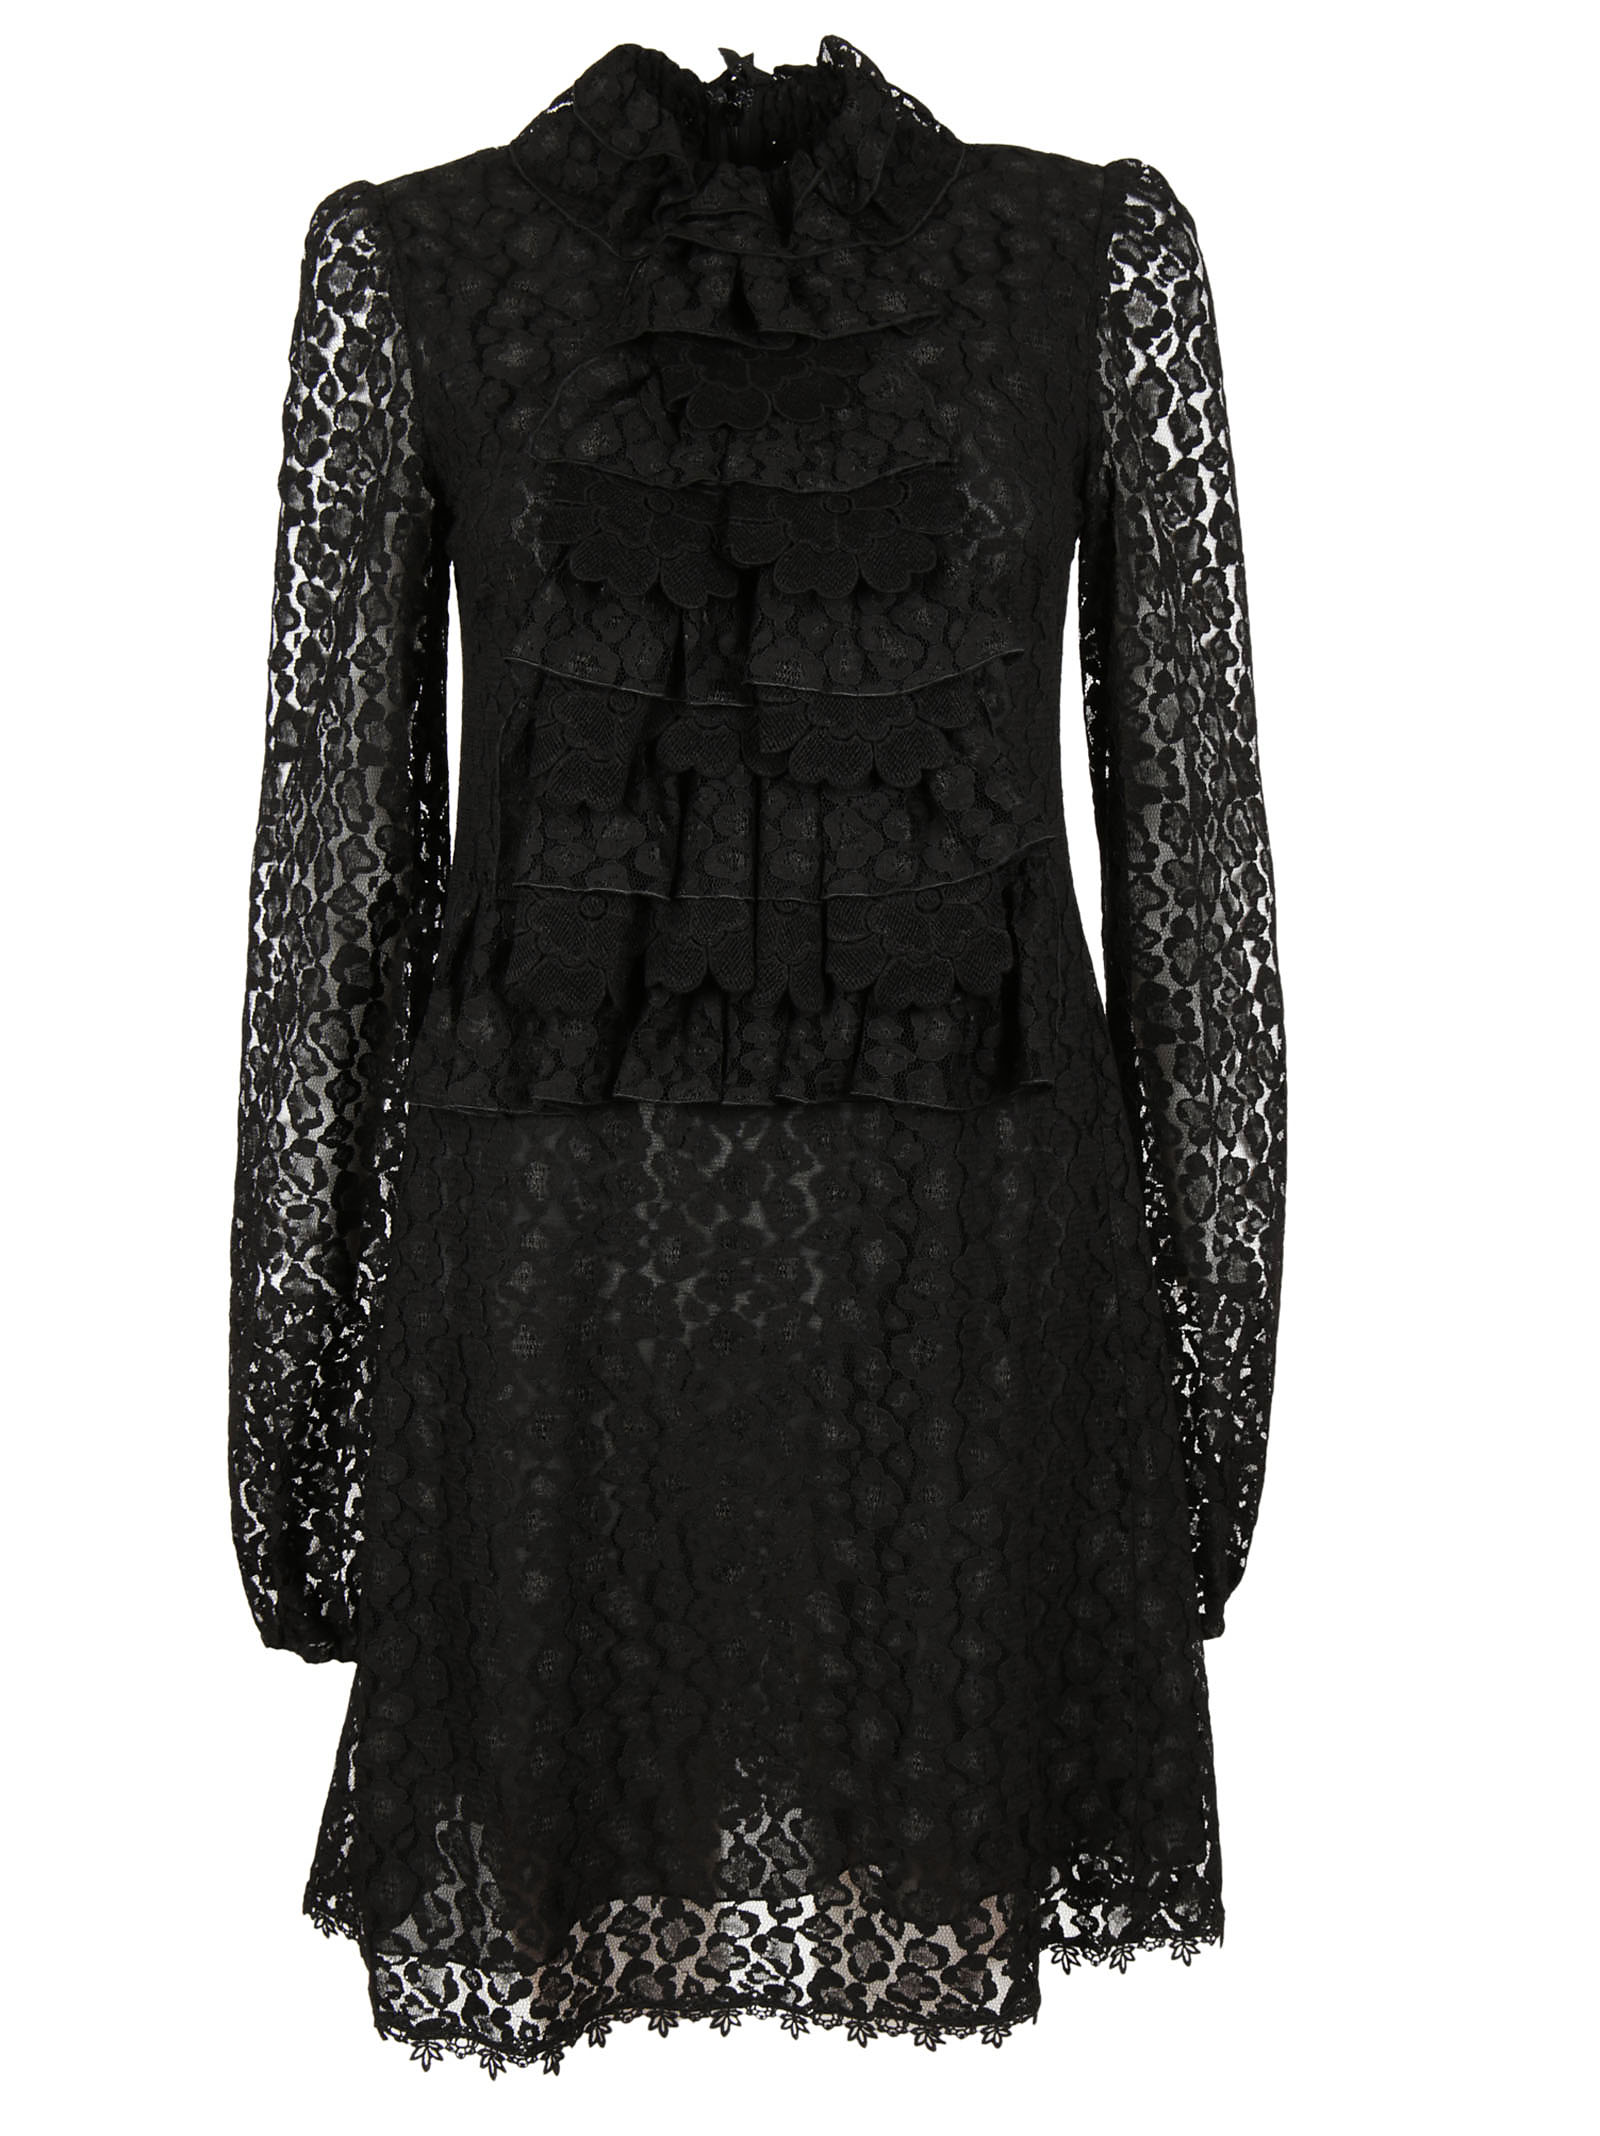 Giamba Giamba Ruffled Lace Dress